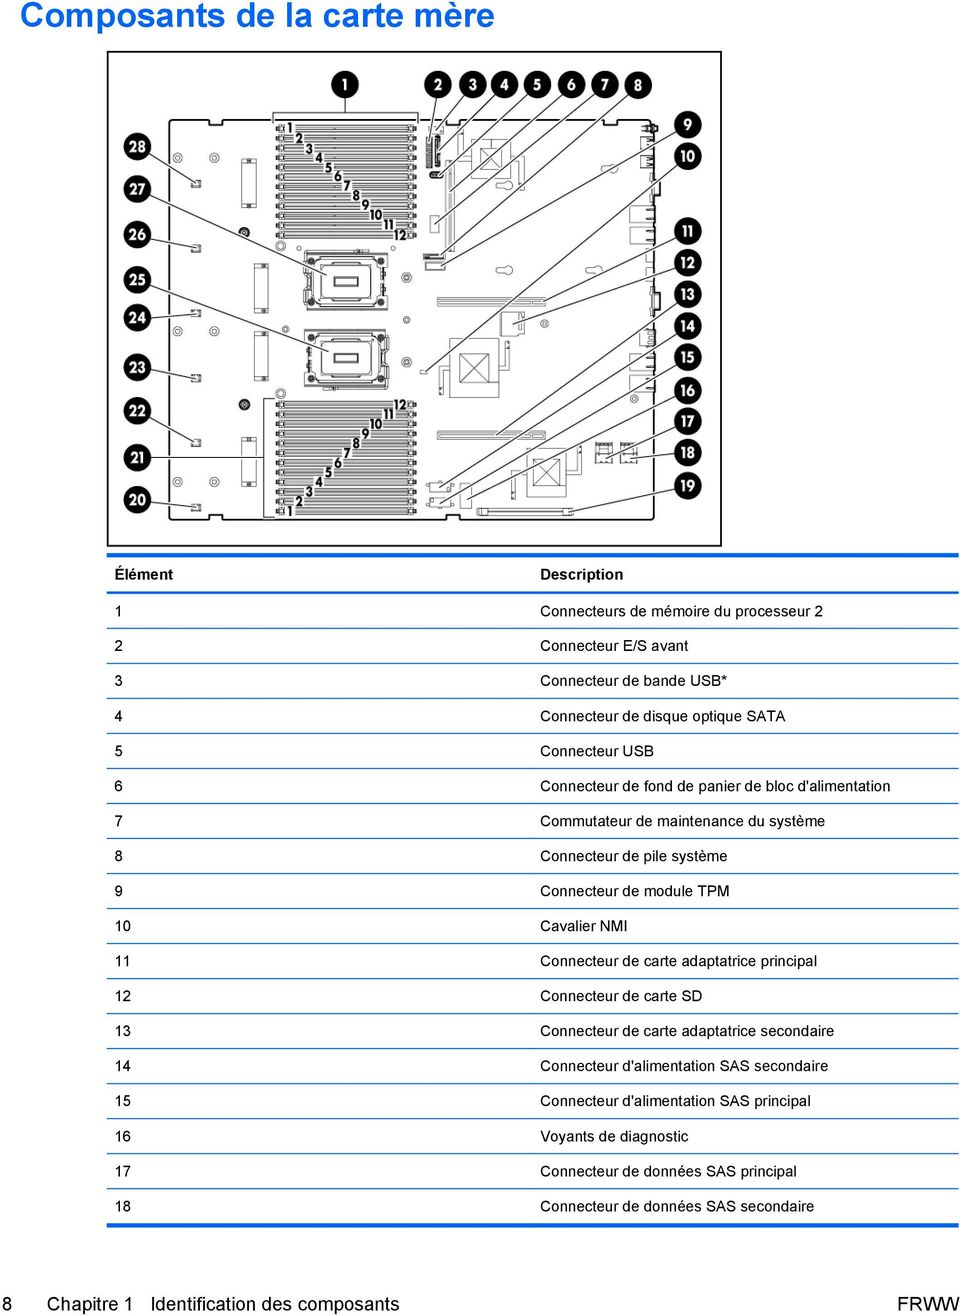 NMI 11 Connecteur de carte adaptatrice principal 12 Connecteur de carte SD 13 Connecteur de carte adaptatrice secondaire 14 Connecteur d'alimentation SAS secondaire 15 Connecteur